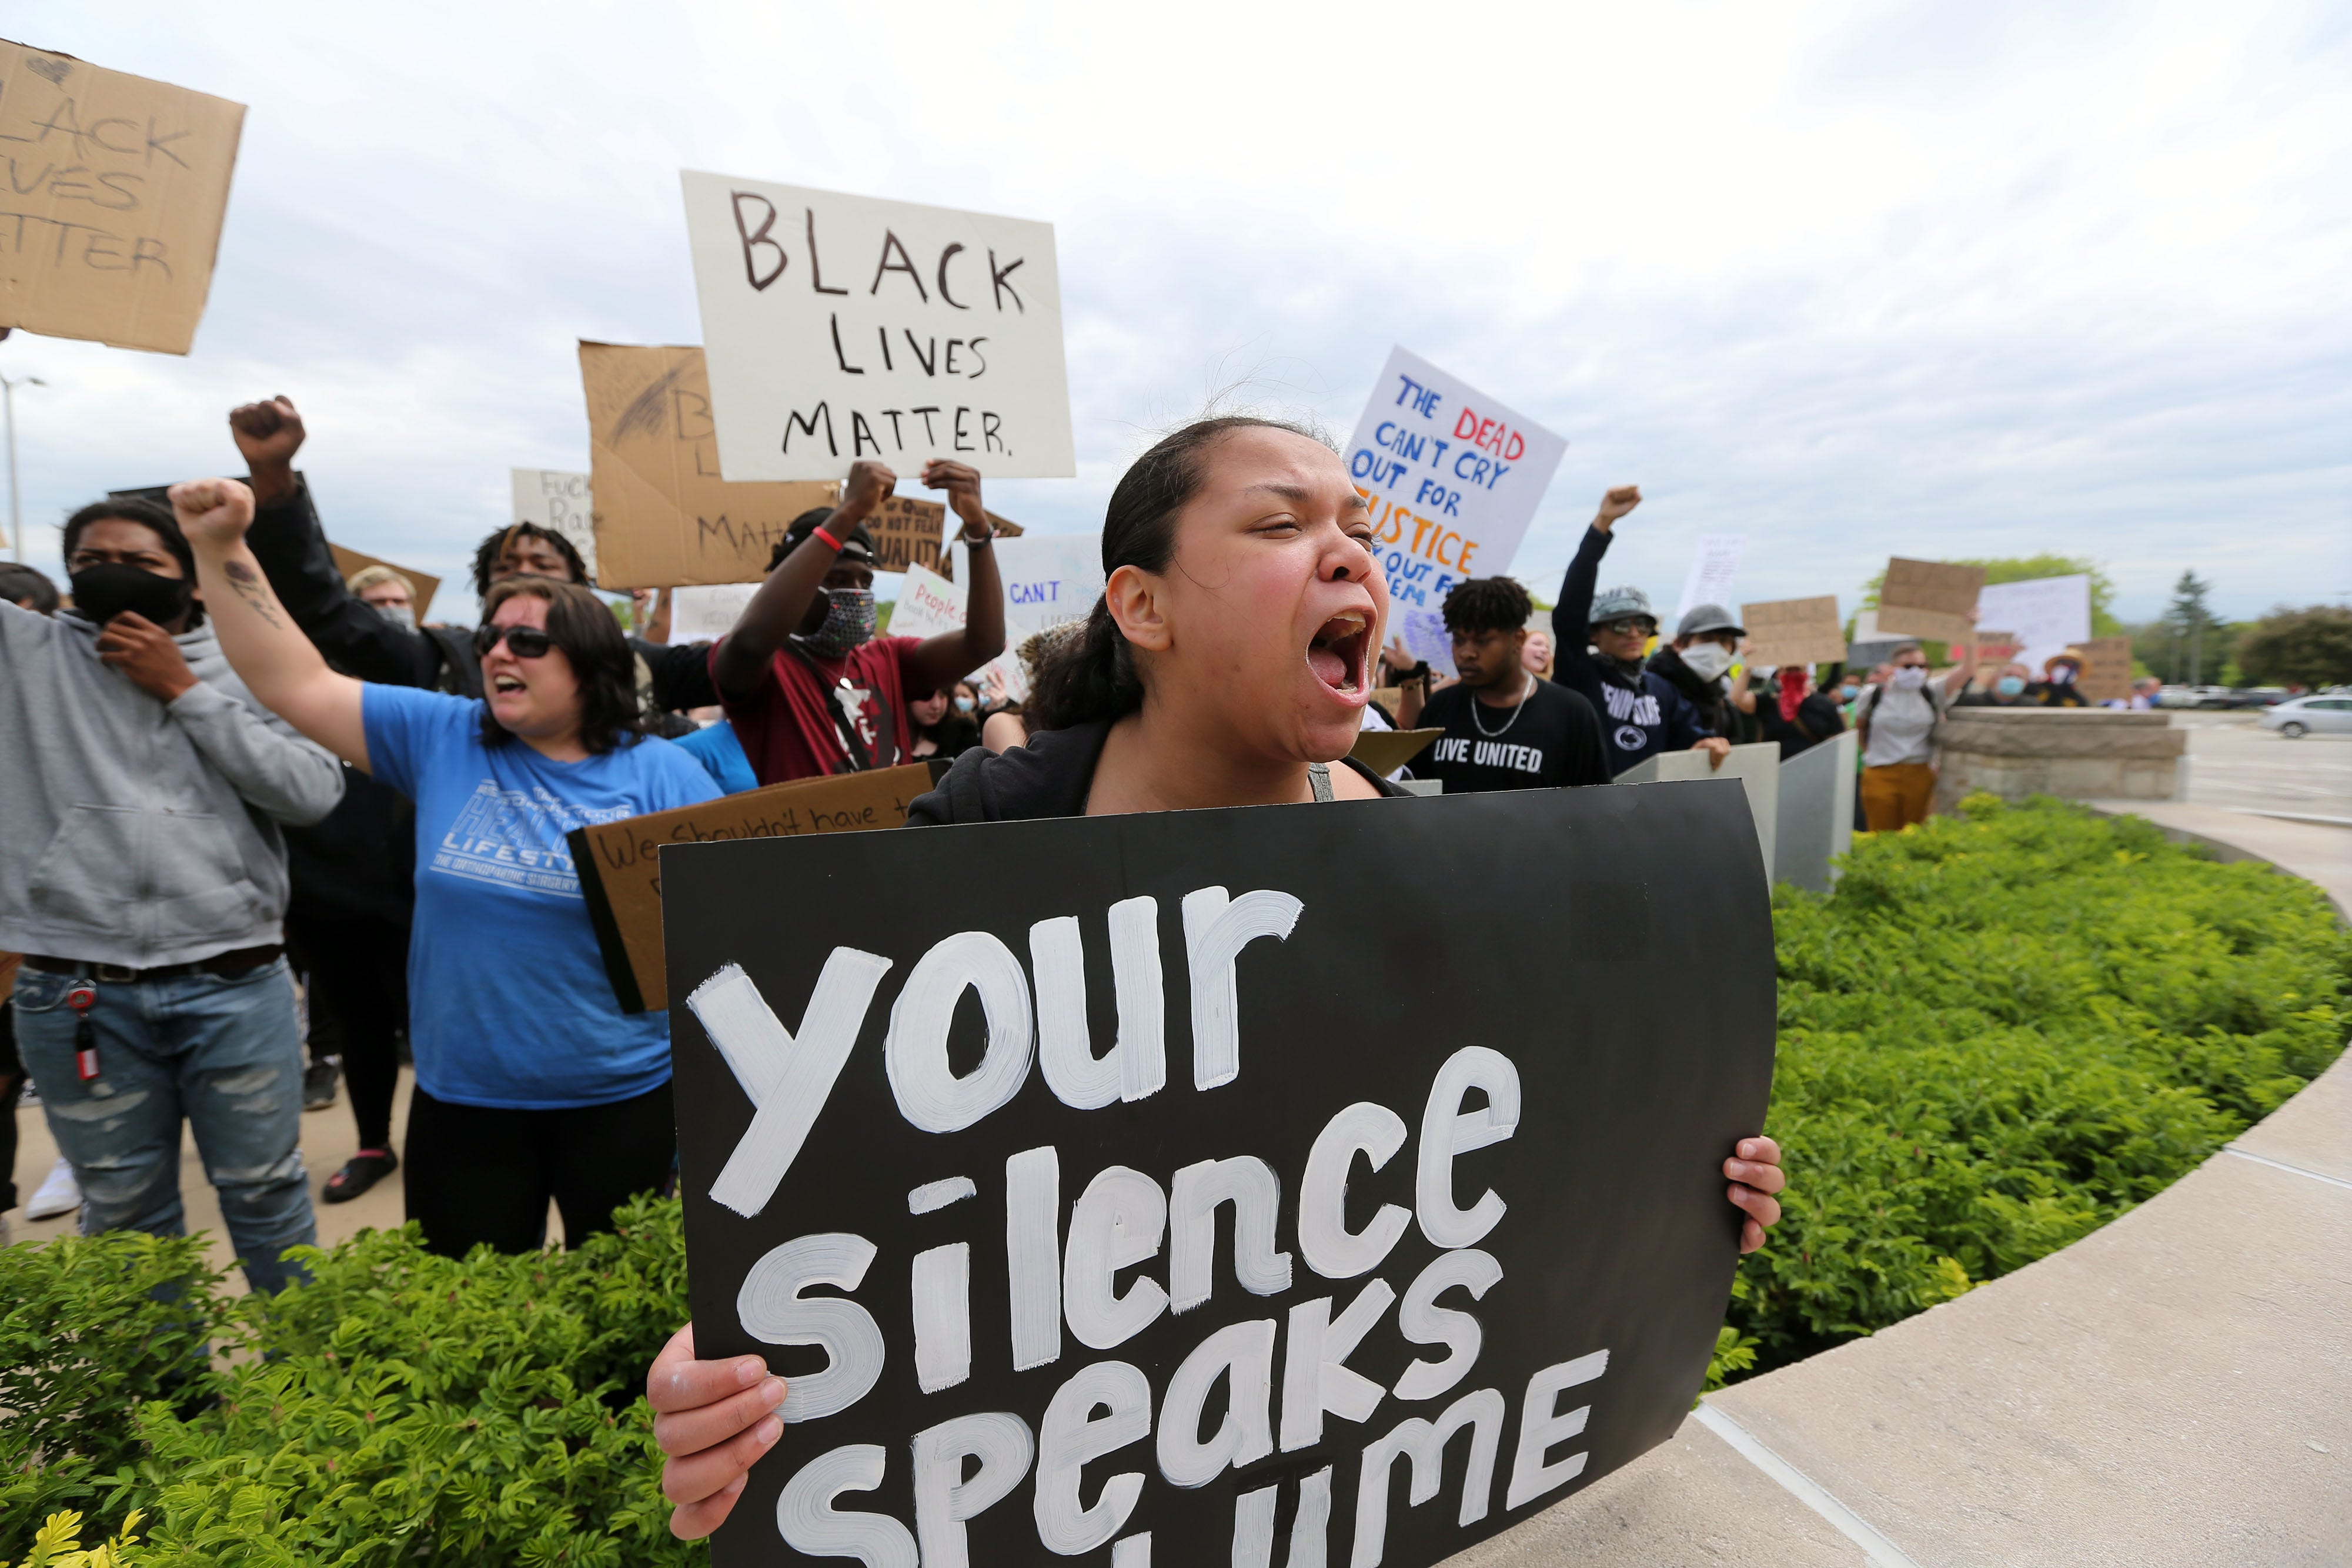 Maliya Lopez Delgade, 21, chants with other protesters in front of the Waukesha County Courthouse to protest the misconduct by police officers on Monday, June 1, 2020. A crowd of over 300 marched through sections of Waukesha to voice their frustration.